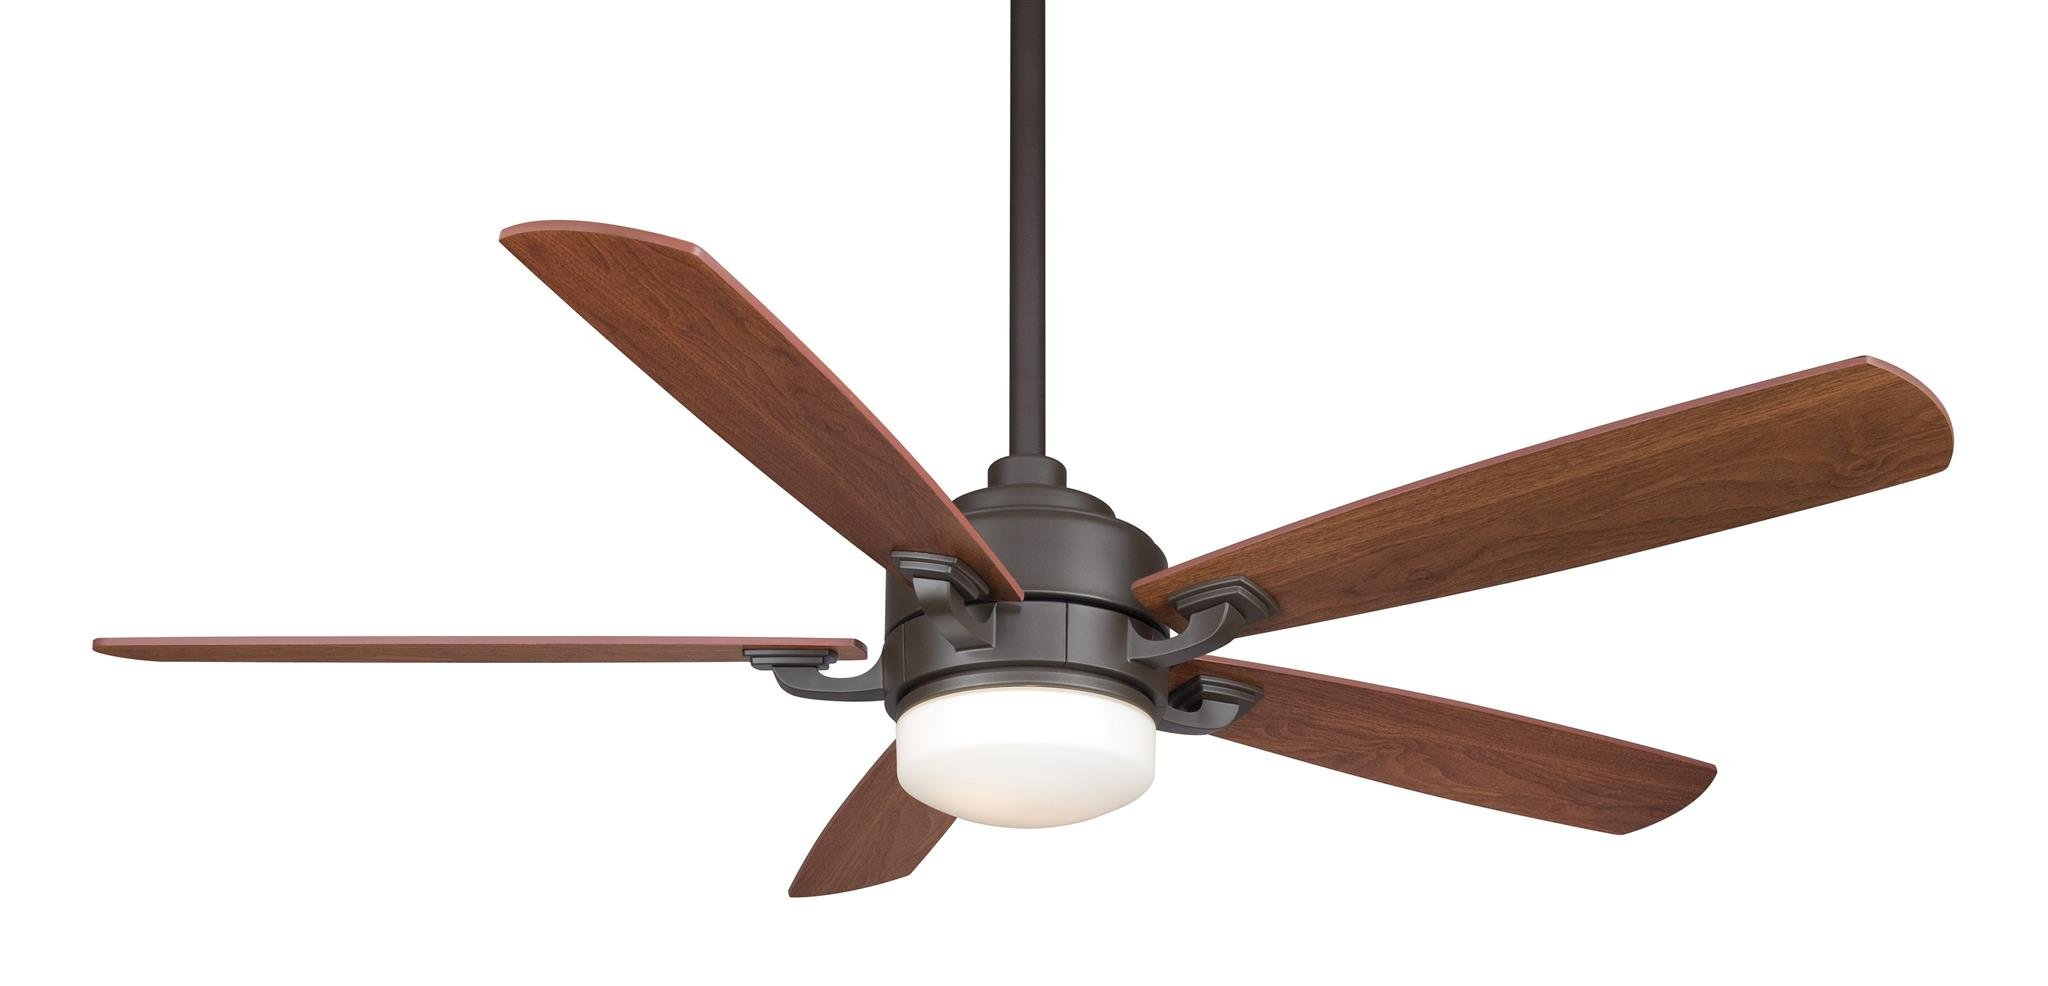 Fanimation FP8003OB – 52 inch - Benito Ceiling Fan with Reversible Walnut/Mahogany Blades with Light Kit and Remote, Oil-Rubbed Bronze. by Fanimation